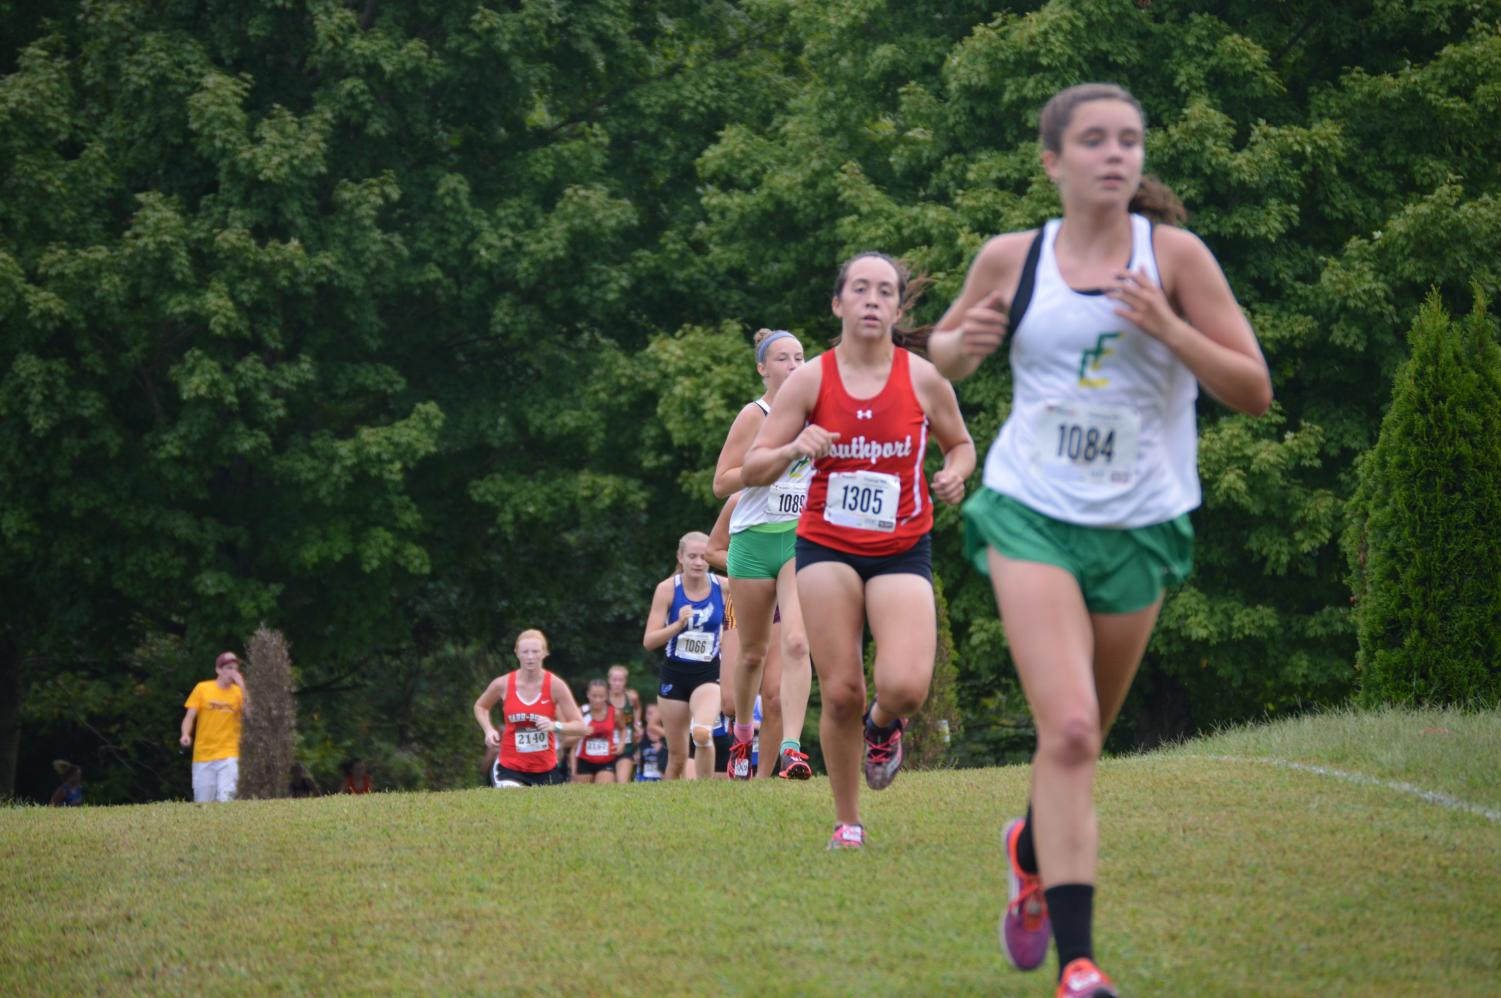 Junior Adrianna Frederick runs in the Columbus North Invitational on Sept. 1. She placed 19th overall in the meet.